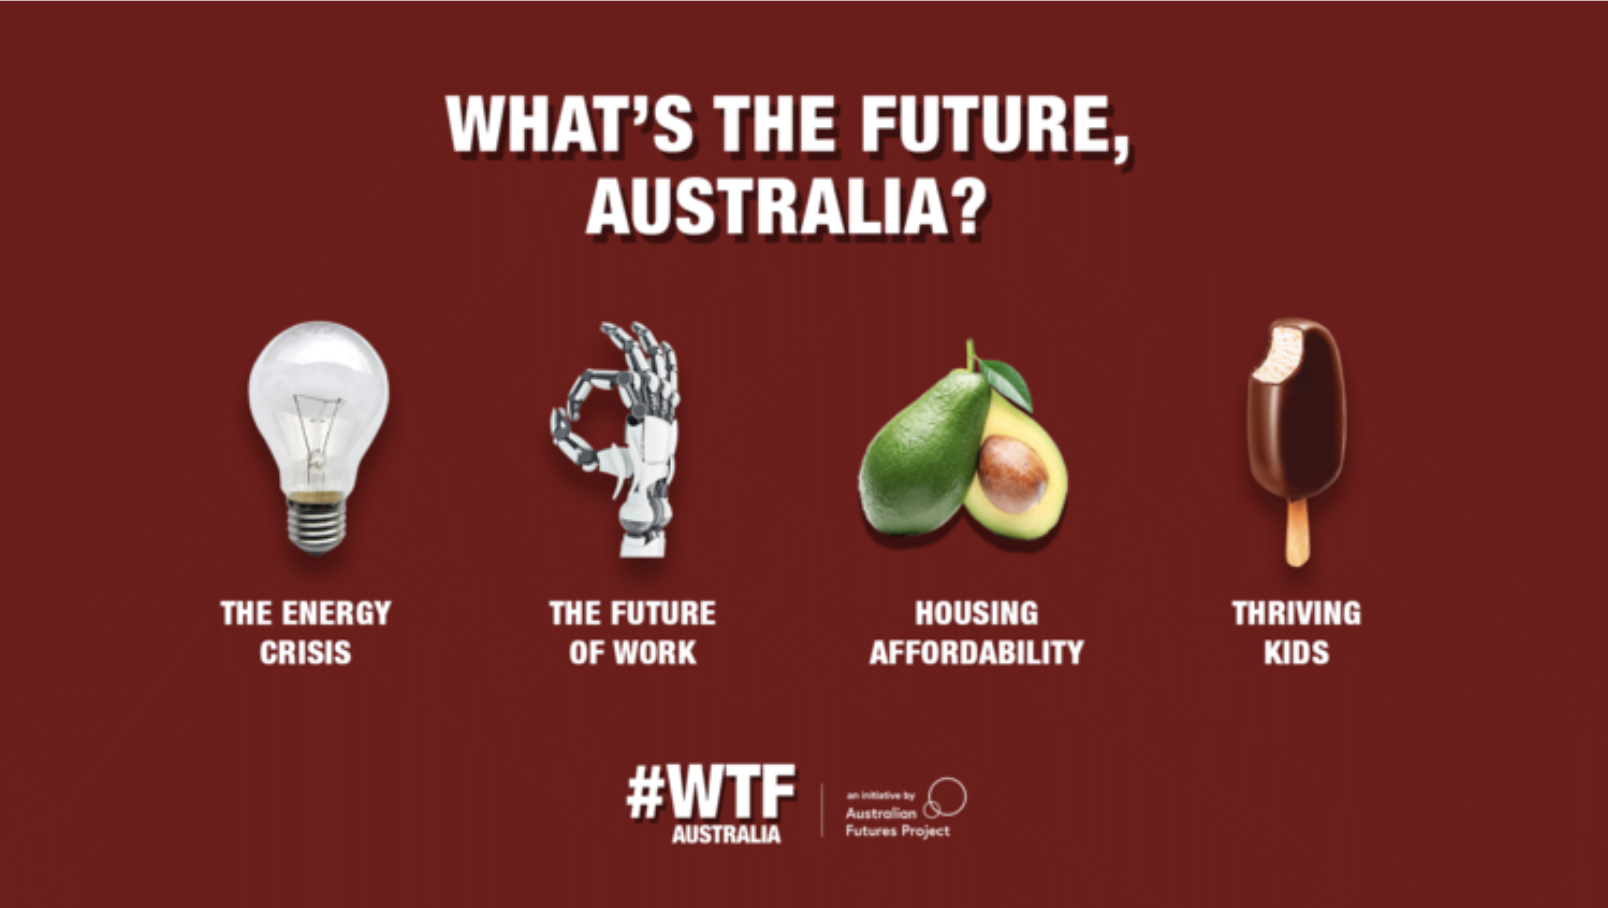 A national initiative connecting the public with experts to get involved in solving four big challenges facing Australia - the energy crisis, the future of work, housing affordability and thriving kids. -